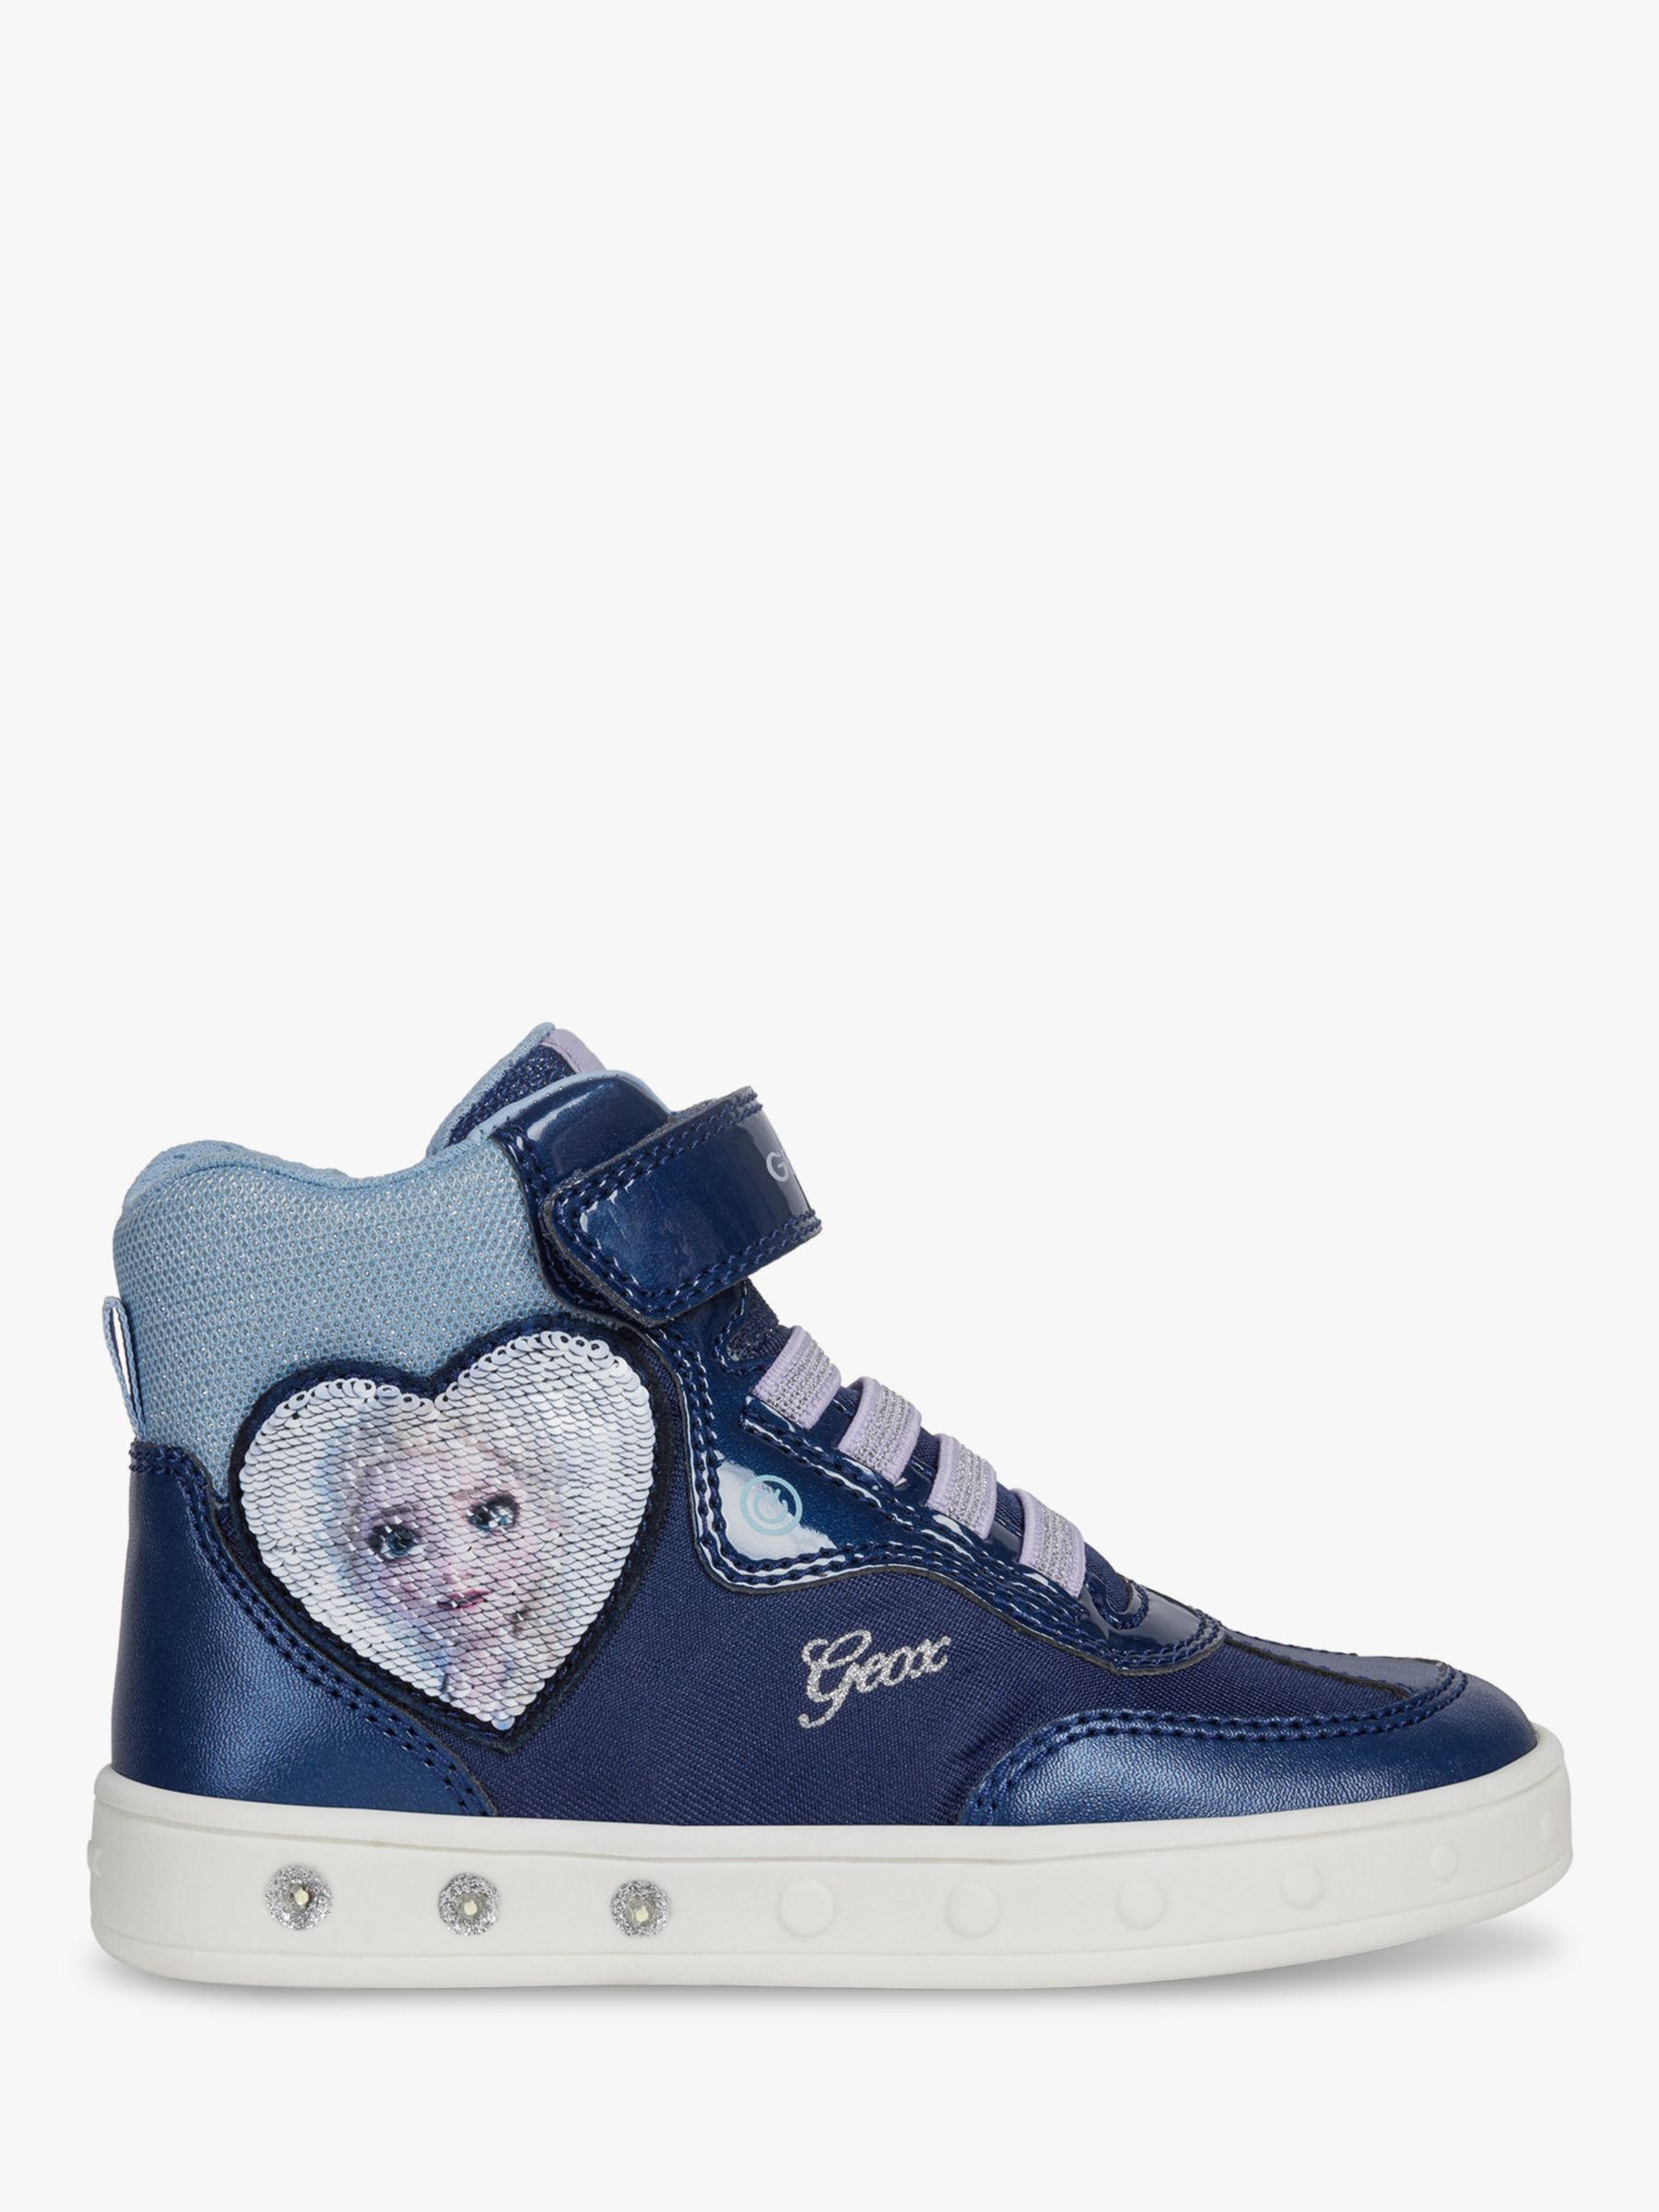 Geox Geox Children's Skylin High Top Riptape Frozen Elsa Trainers, Navy/Lilac